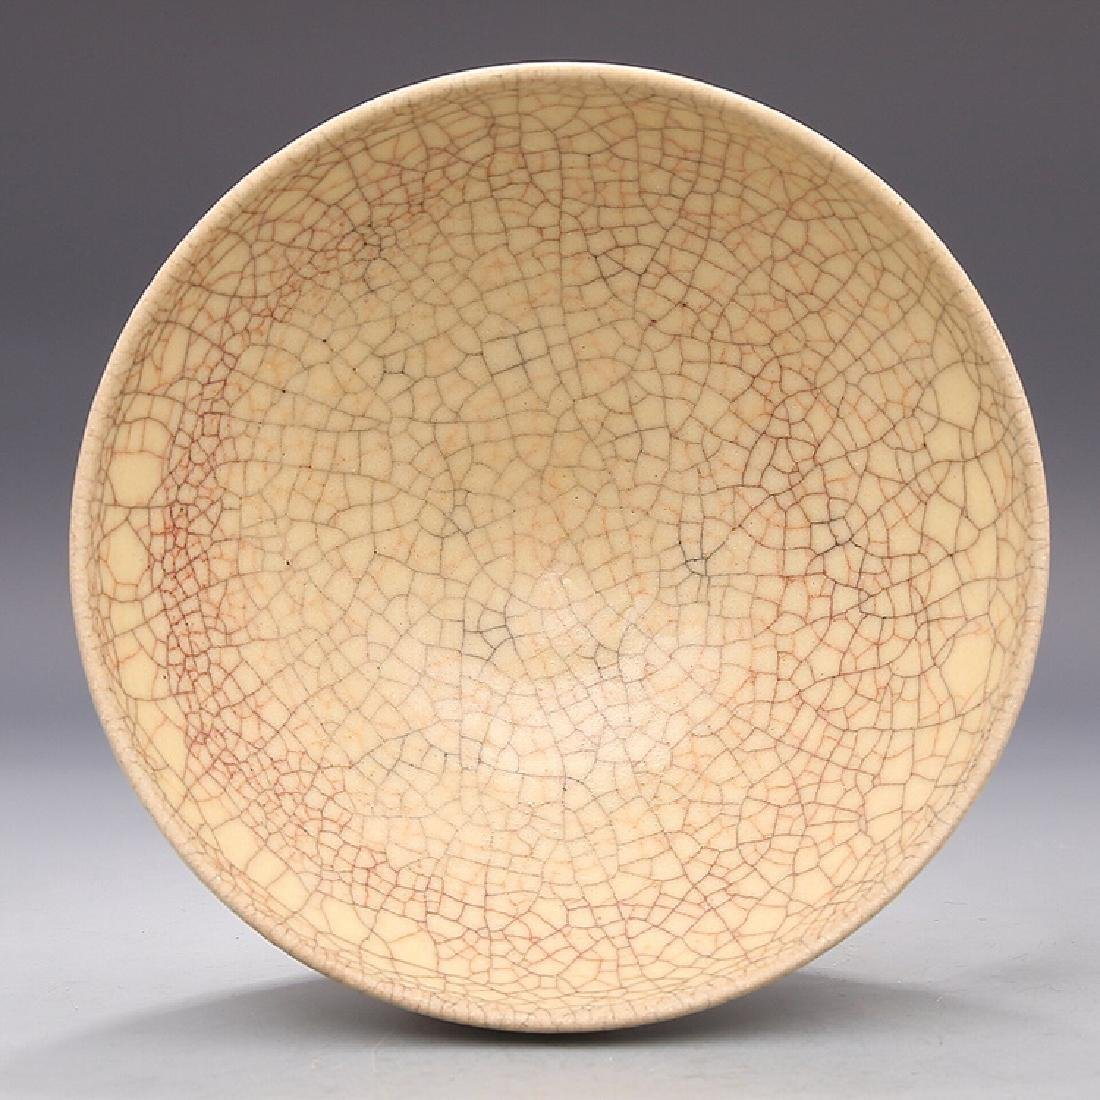 Chinese Song Dynasty Ge Ware Cracked Pattern Porcelain - 6